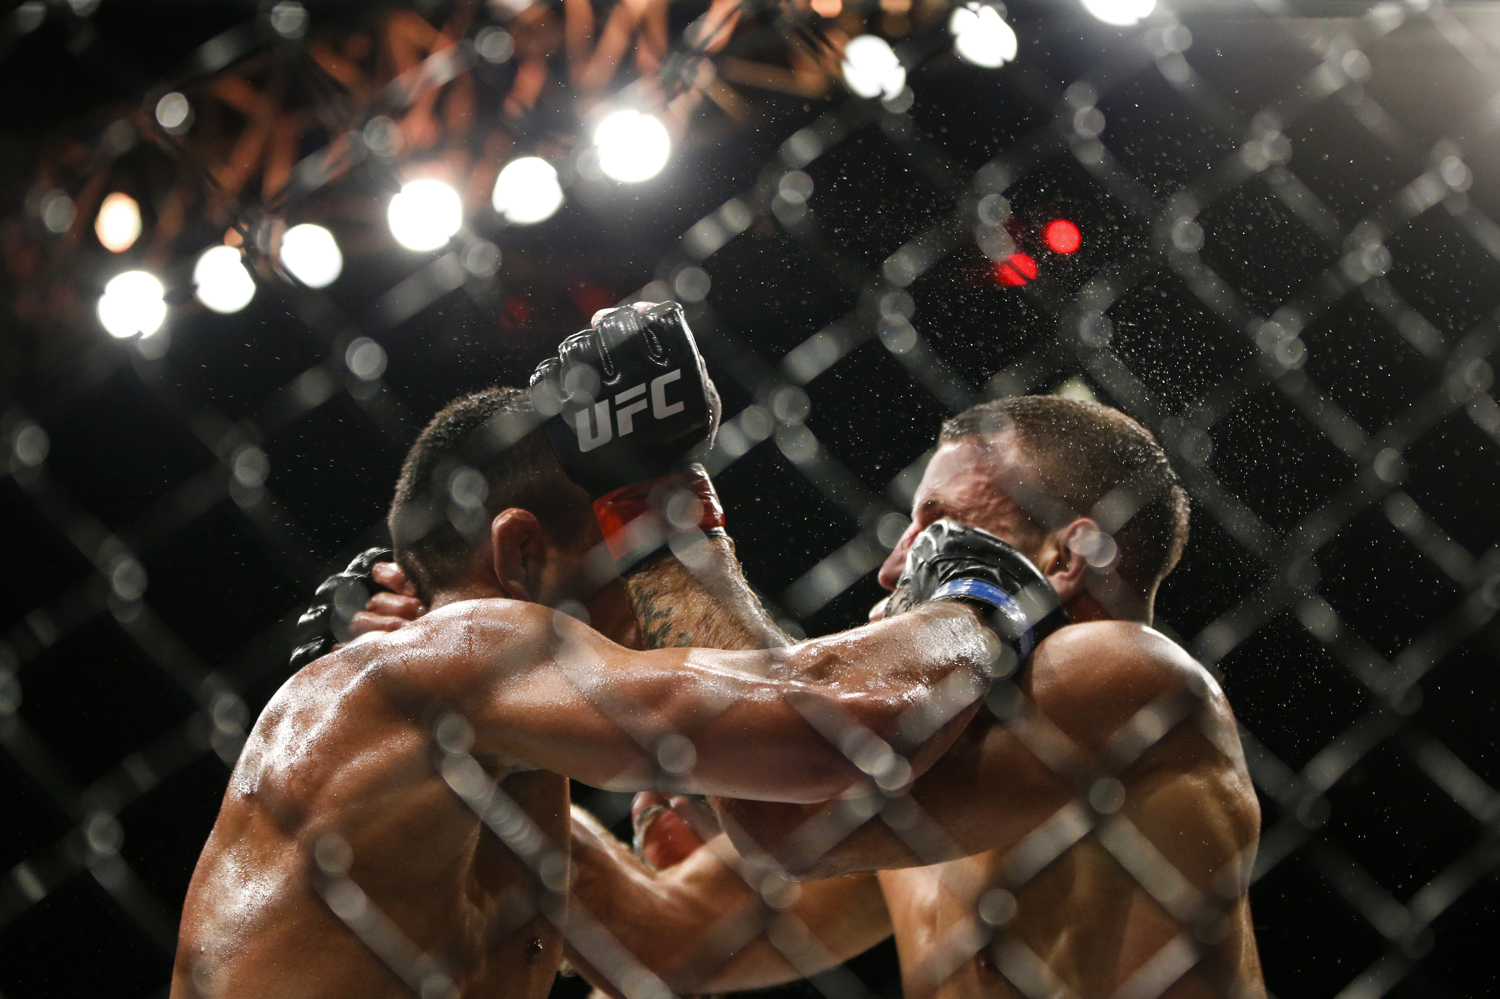 Rafael dos Anjos (L) of Brazil fights Tarec Saffiedine of Belgium during their welterweight bout at the UFC Fight Night at the Singapore Indoor Stadium on June 17, 2017.